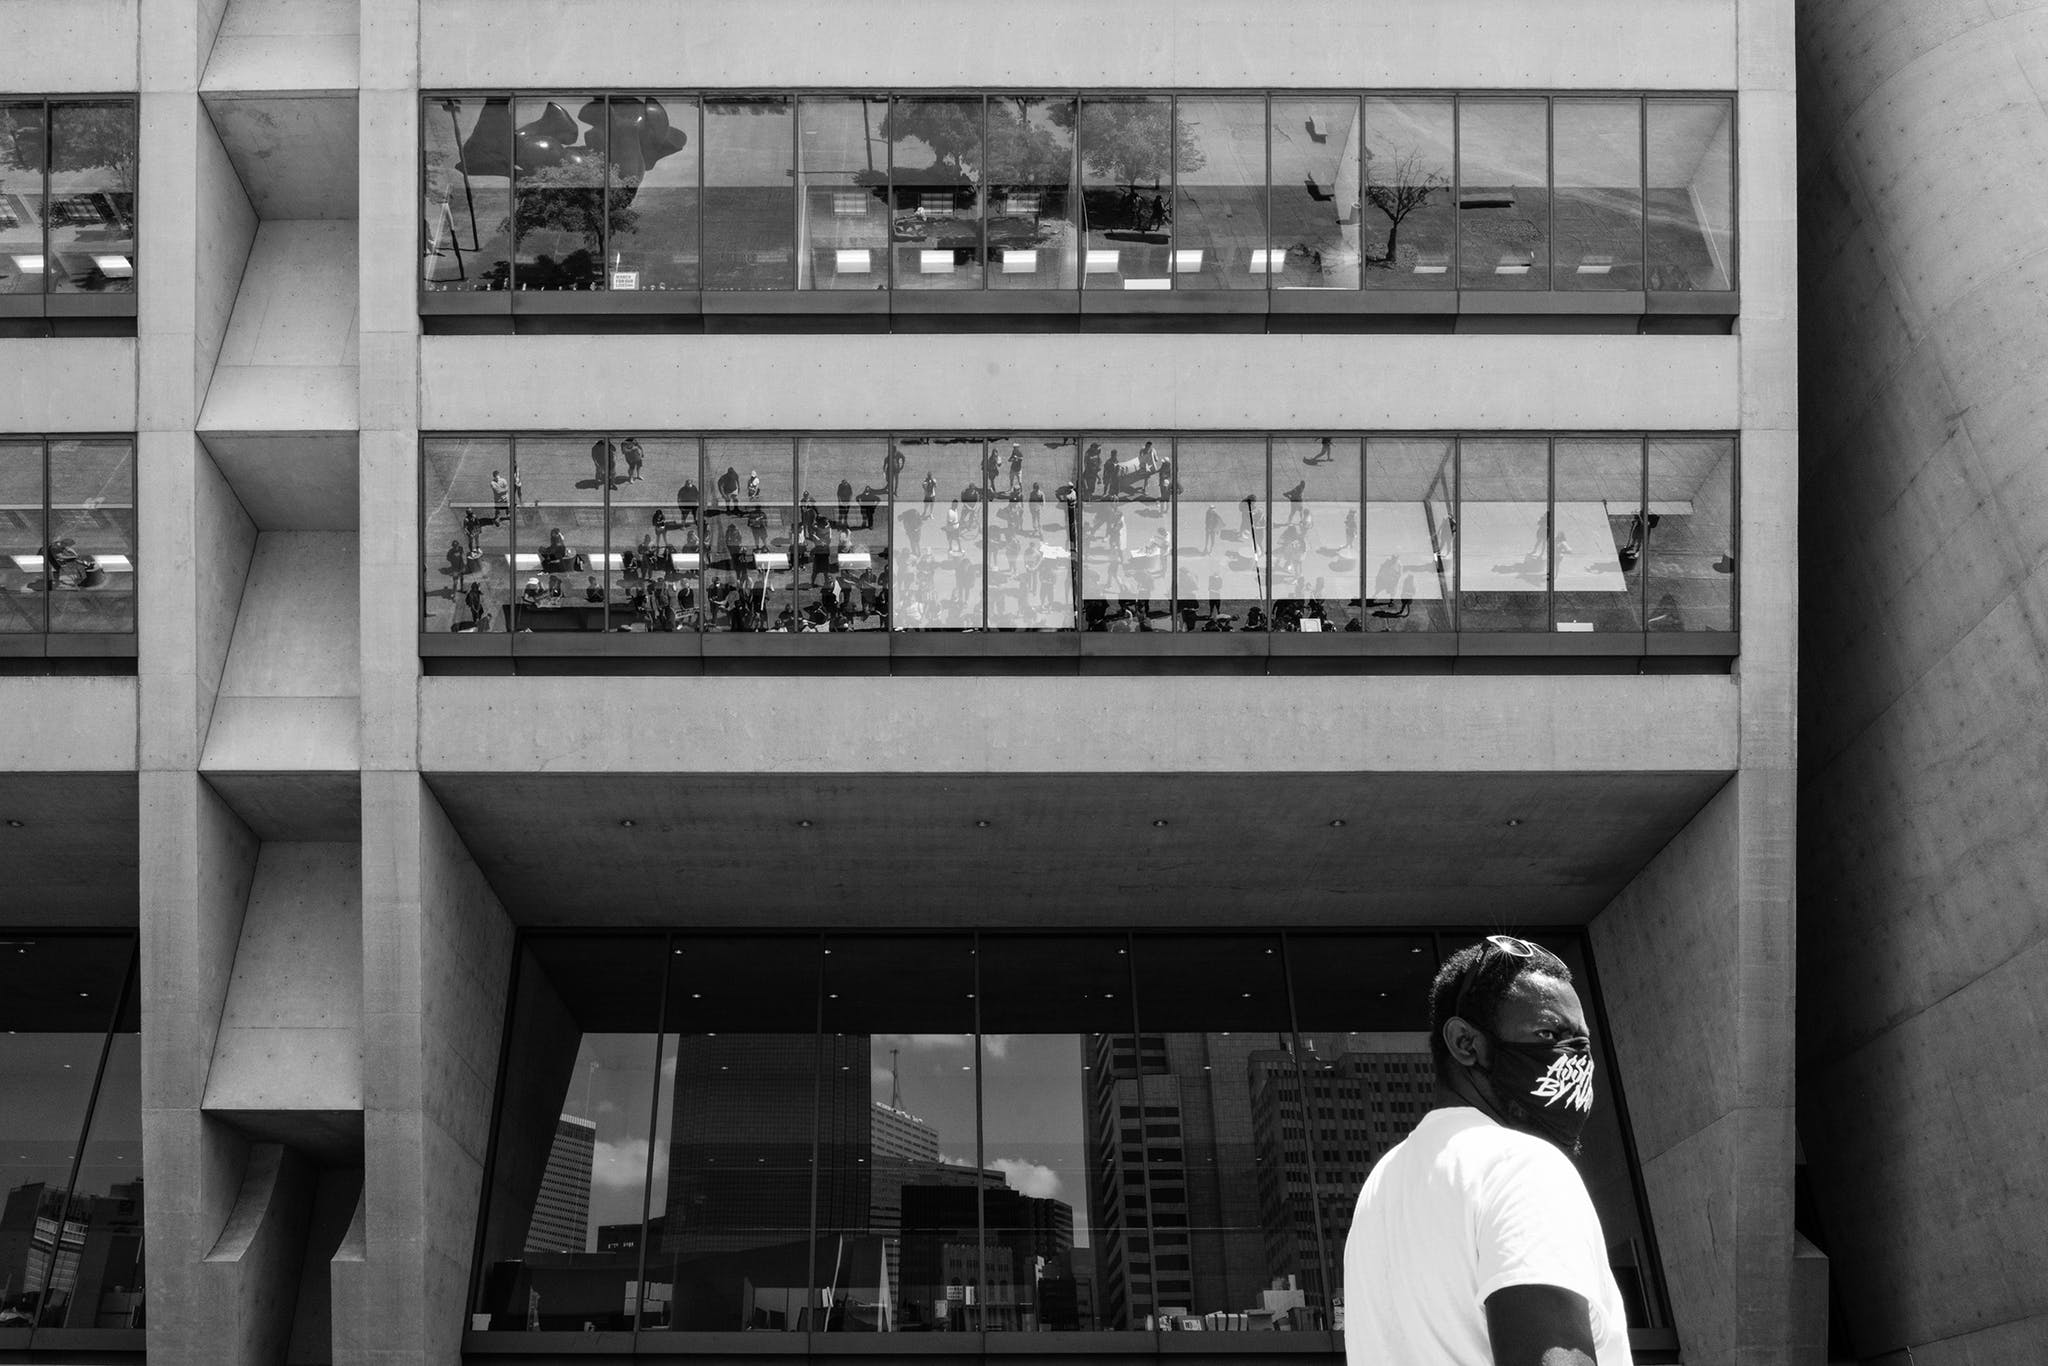 A man stands elevated above the crowd at Dallas City Hall with the reflection of the protest below on June 3, 2020.